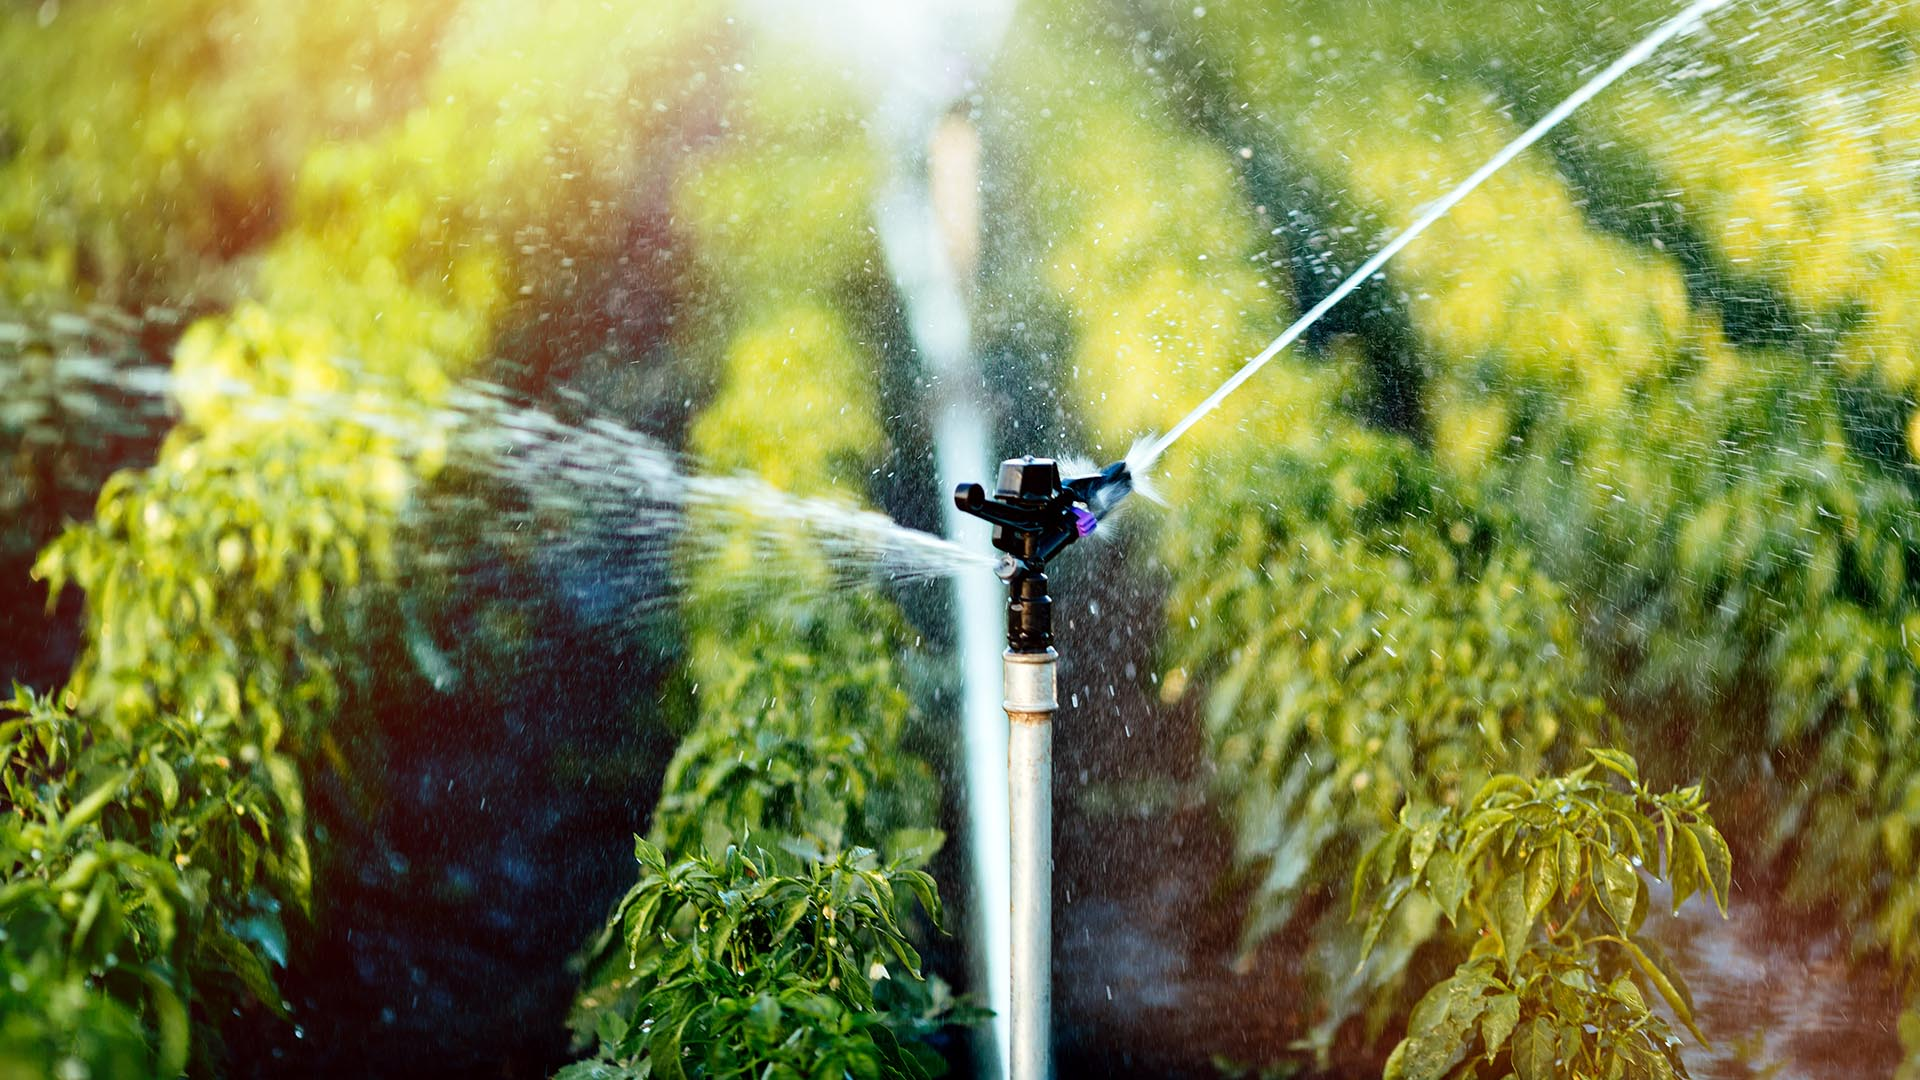 Irrigation system in operation in the region of Baixo Acaraú and Tabuleiro das Russas (CE)